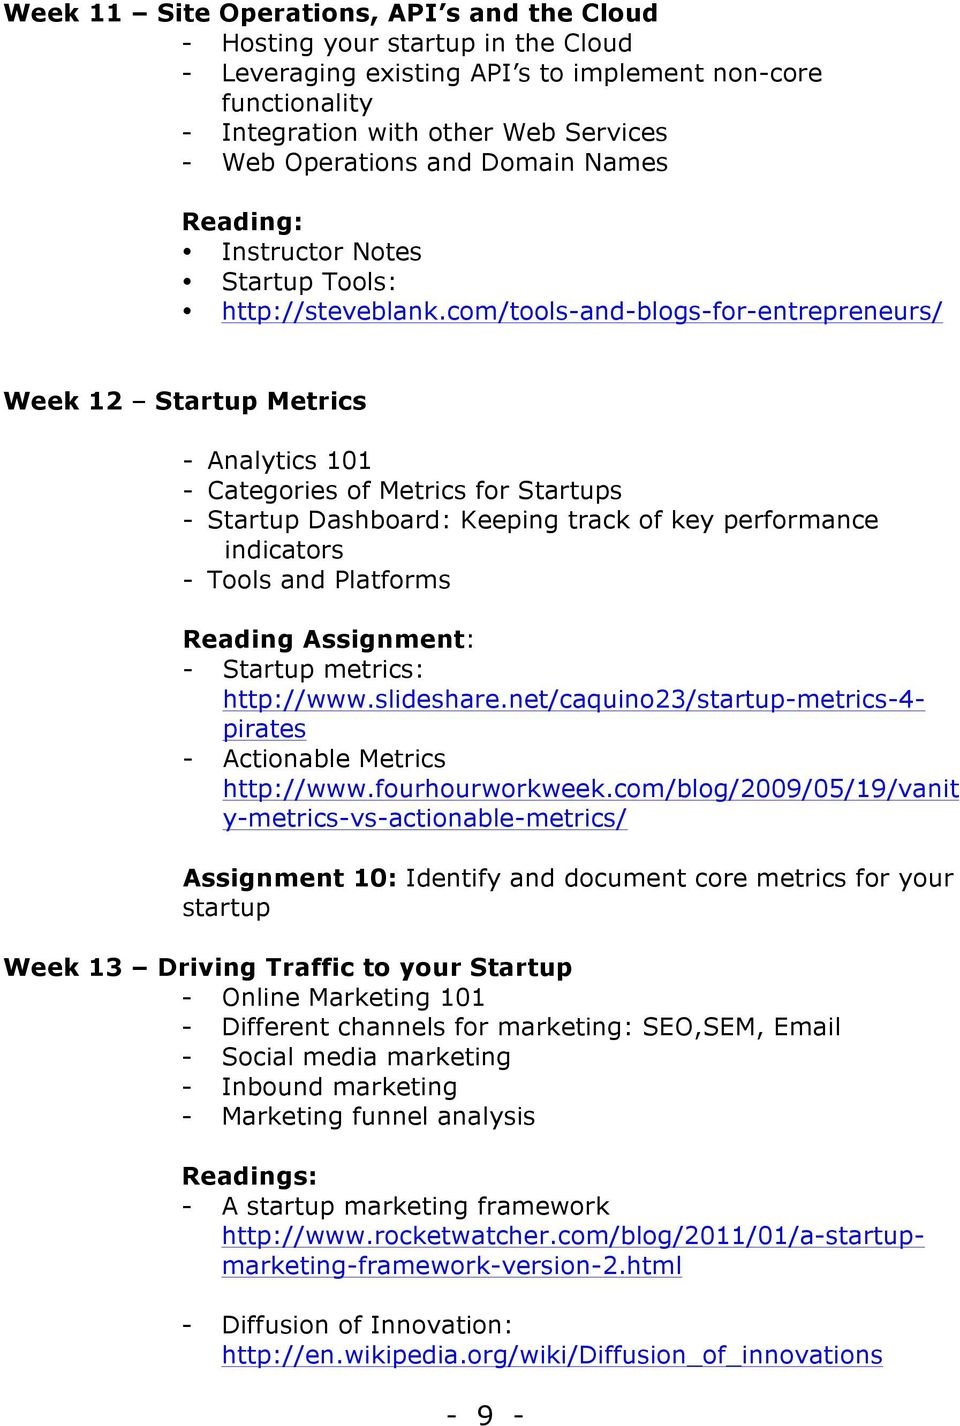 com/tools-and-blogs-for-entrepreneurs/ Week 12 Startup Metrics - Analytics 101 - Categories of Metrics for Startups - Startup Dashboard: Keeping track of key performance indicators - Tools and